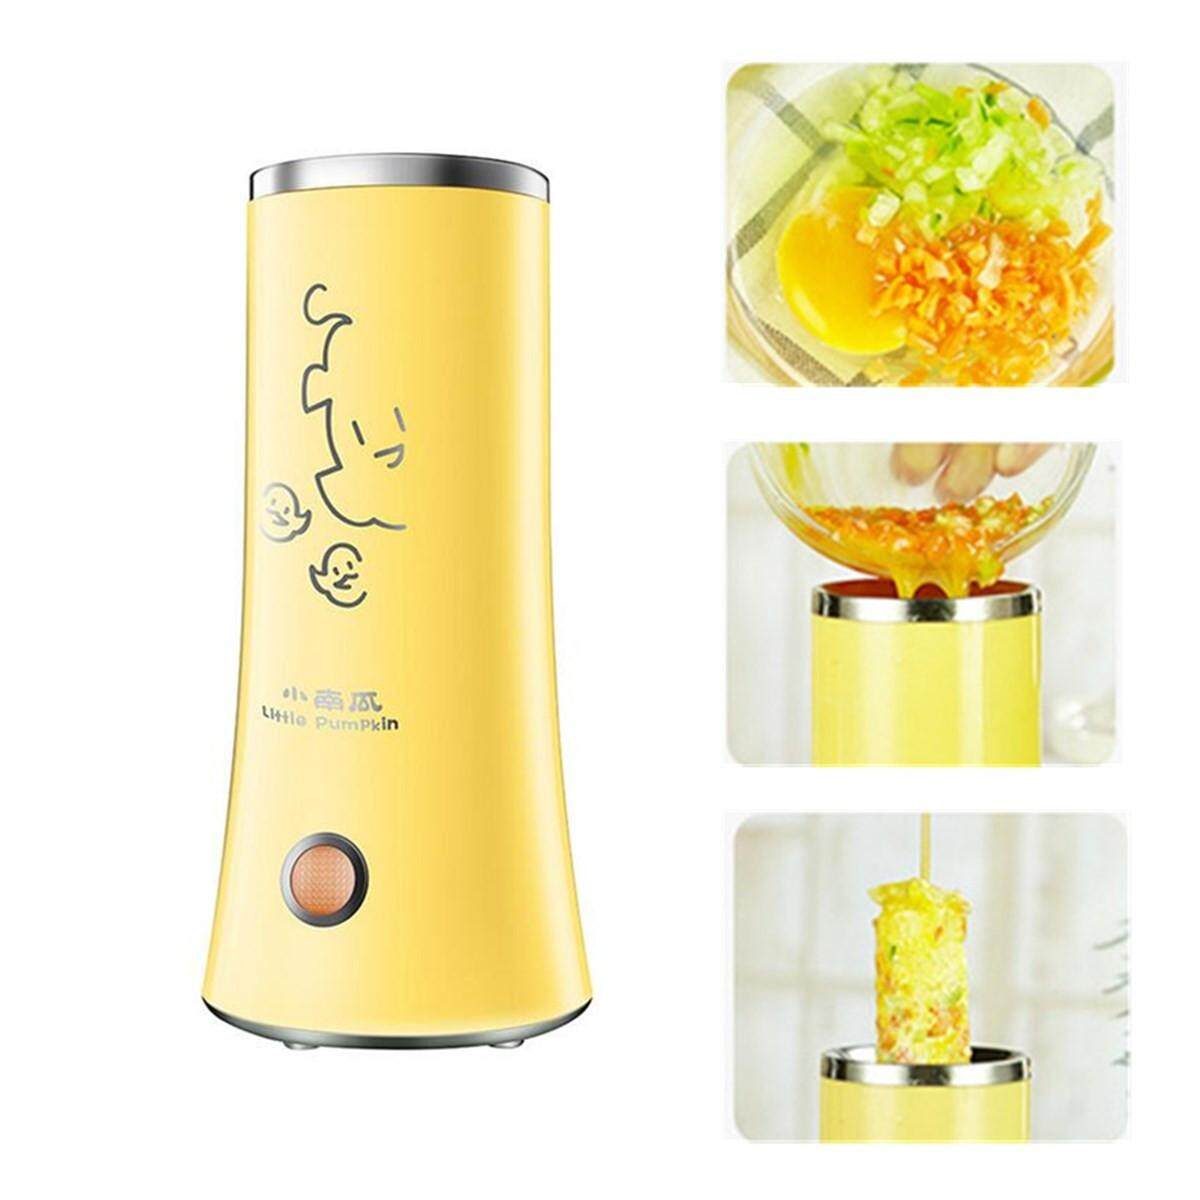 Electric Diy Eggroll Maker Egg Roll Boiler Omelette Sausage Frying Cooking Tools By Audew.